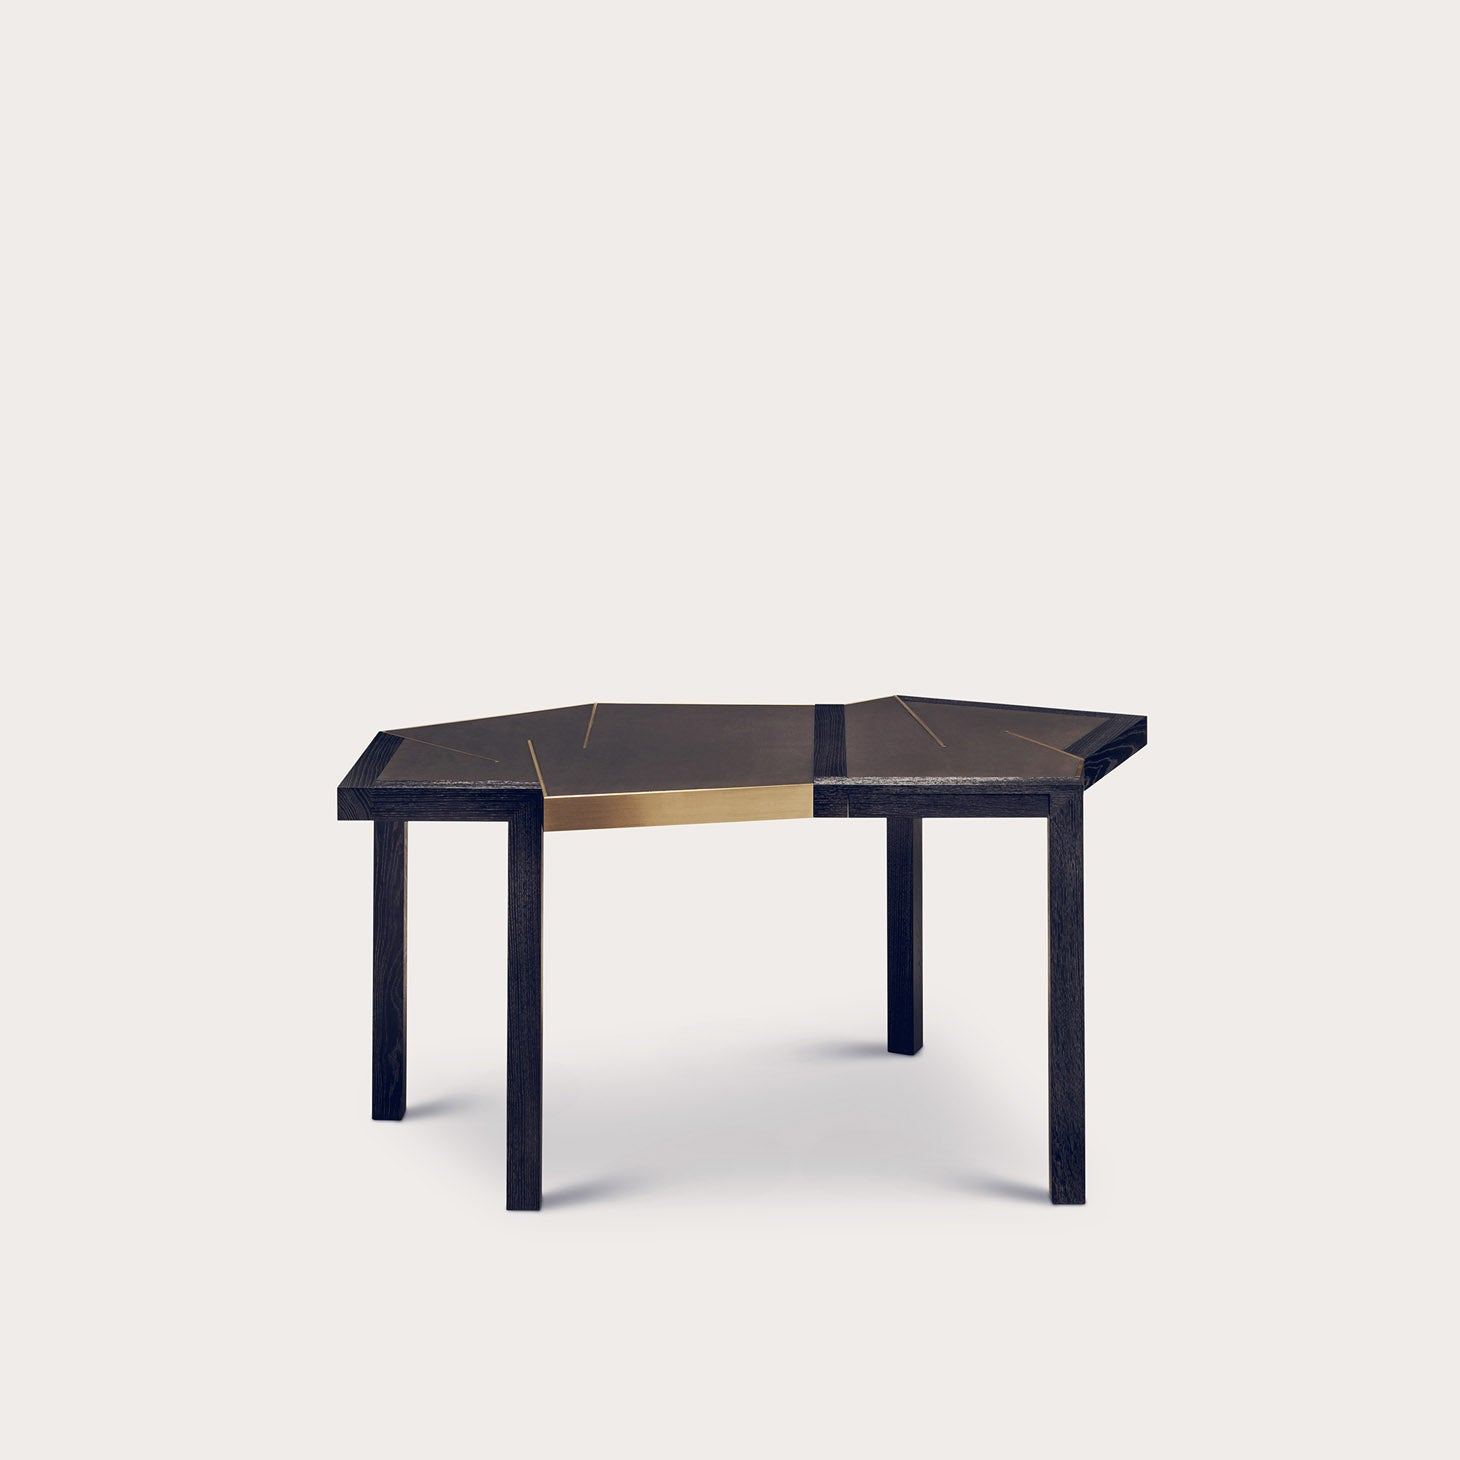 Dinant Tables Bruno Moinard Designer Furniture Sku: 773-230-10018